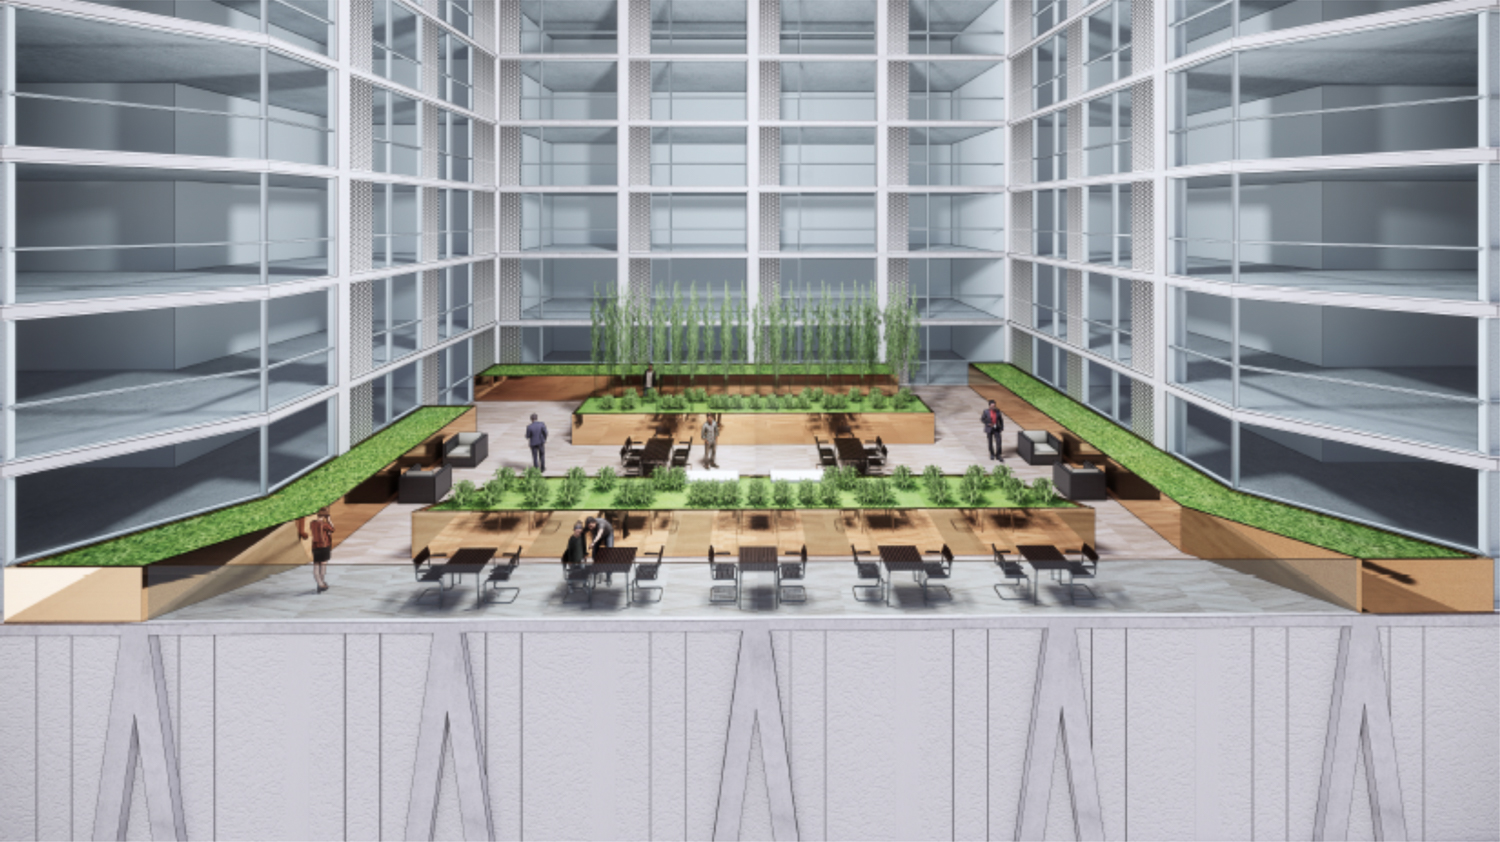 The Carlysle at 51 Notre Dame Avenue interior lobby, rendering courtesy CBRE and Acquity Realty